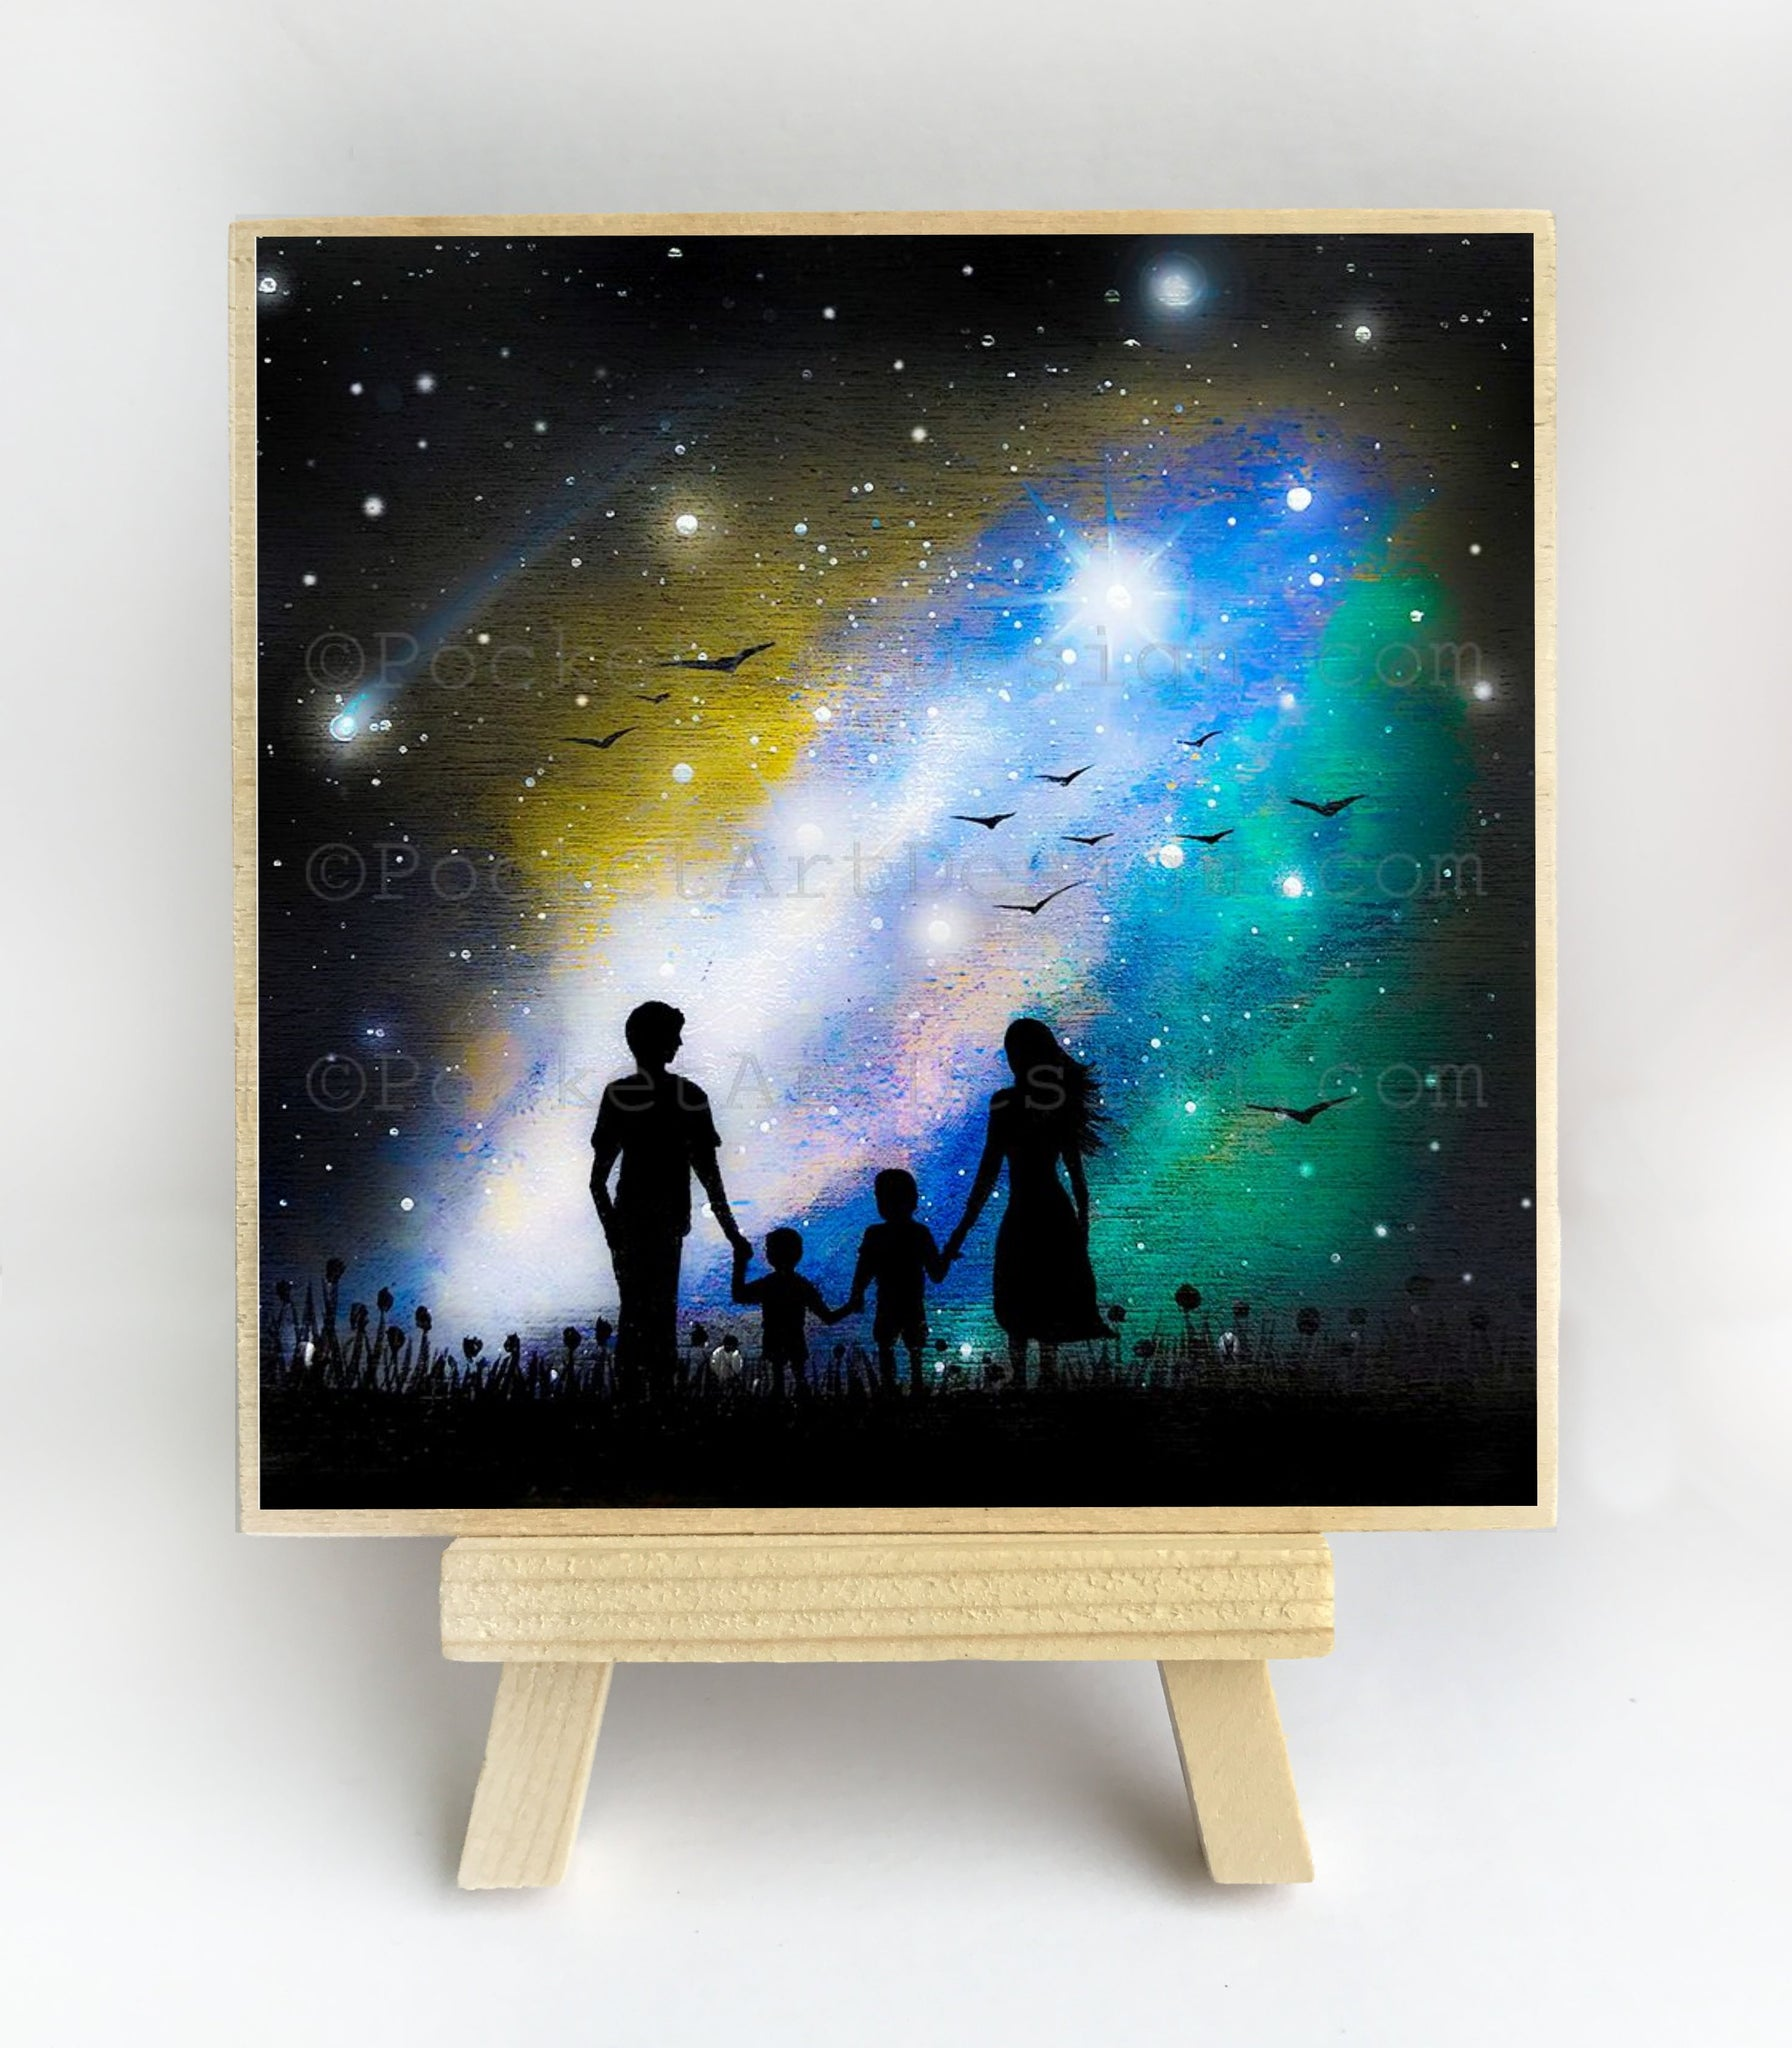 Family watching the galaxy - night - silhouette - original miniature art print on 4 x 4 wood-Print-Easel Wood-PocketArtDesigns-Original Art-wall rt